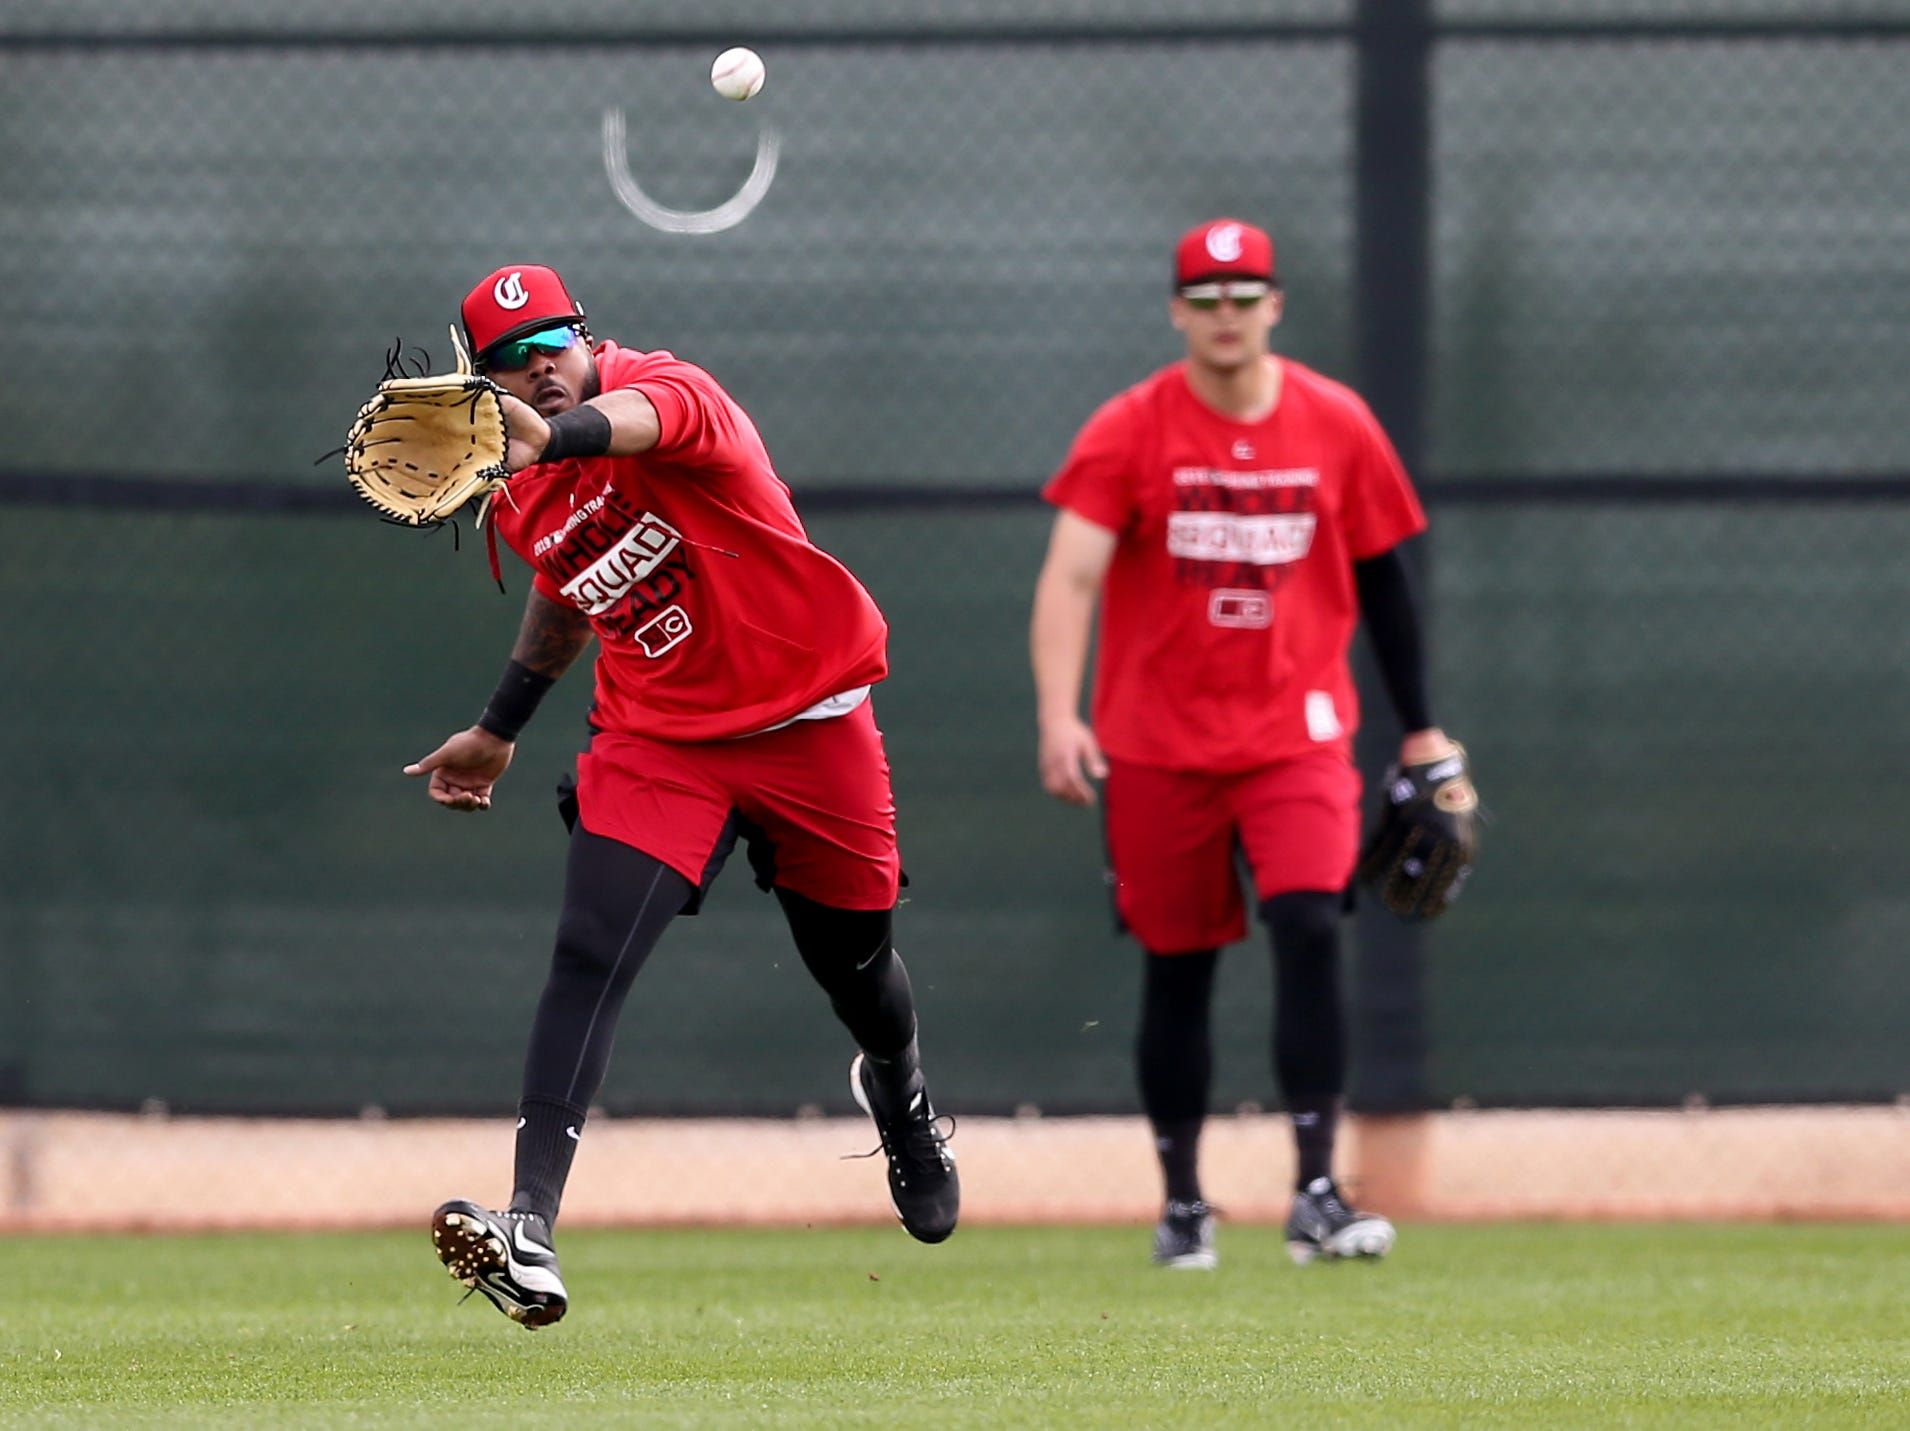 Cincinnati Reds outfielder Phillip Ervin (6) fields a fly ball, Friday, Feb. 15, 2019, at the Cincinnati Reds spring training facility in Goodyear, Arizona.